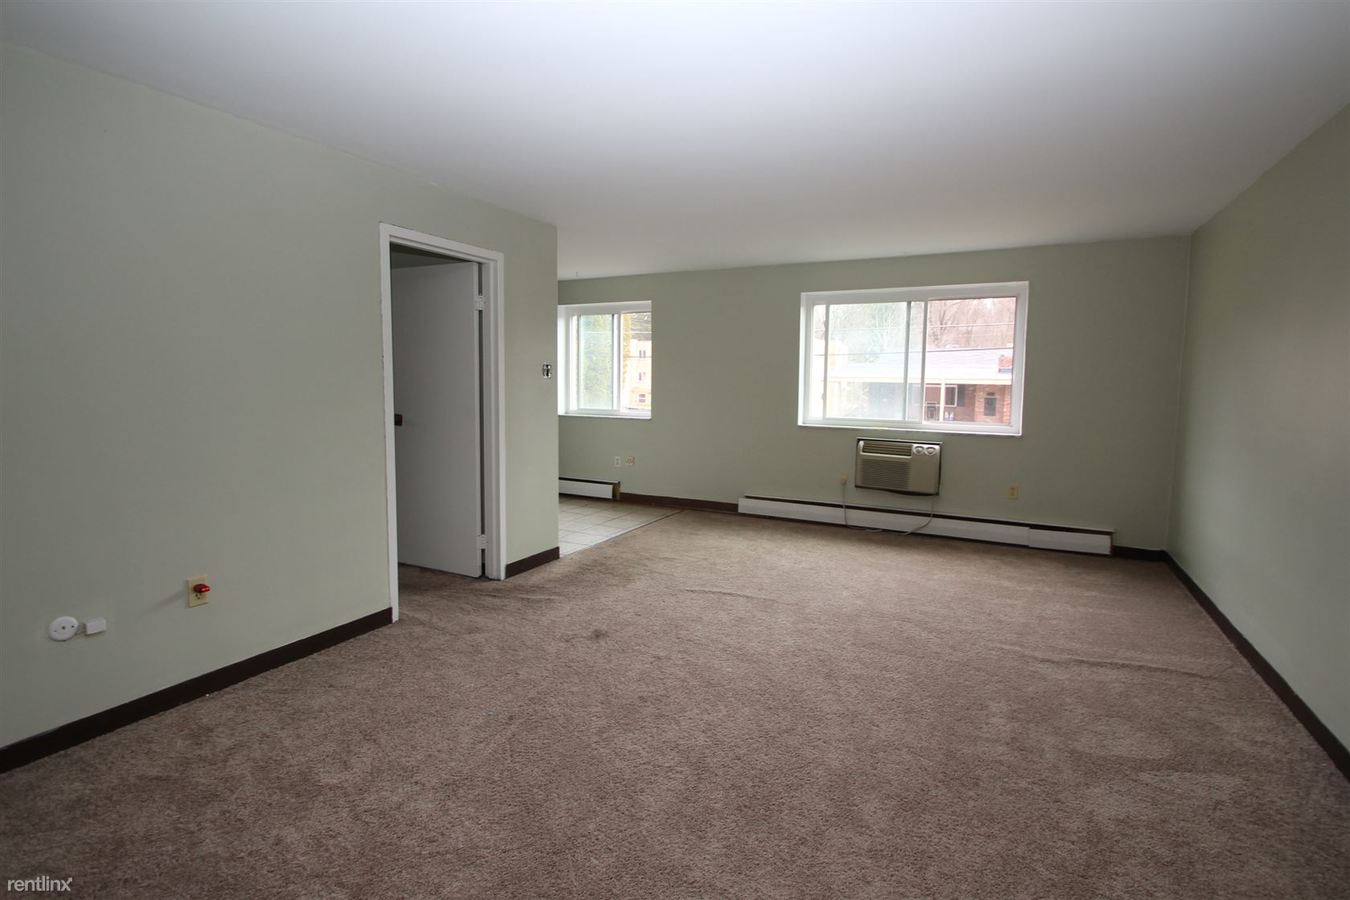 1 Bedroom 1 Bathroom Apartment for rent at Cambridge Apartments in Moon Township, PA